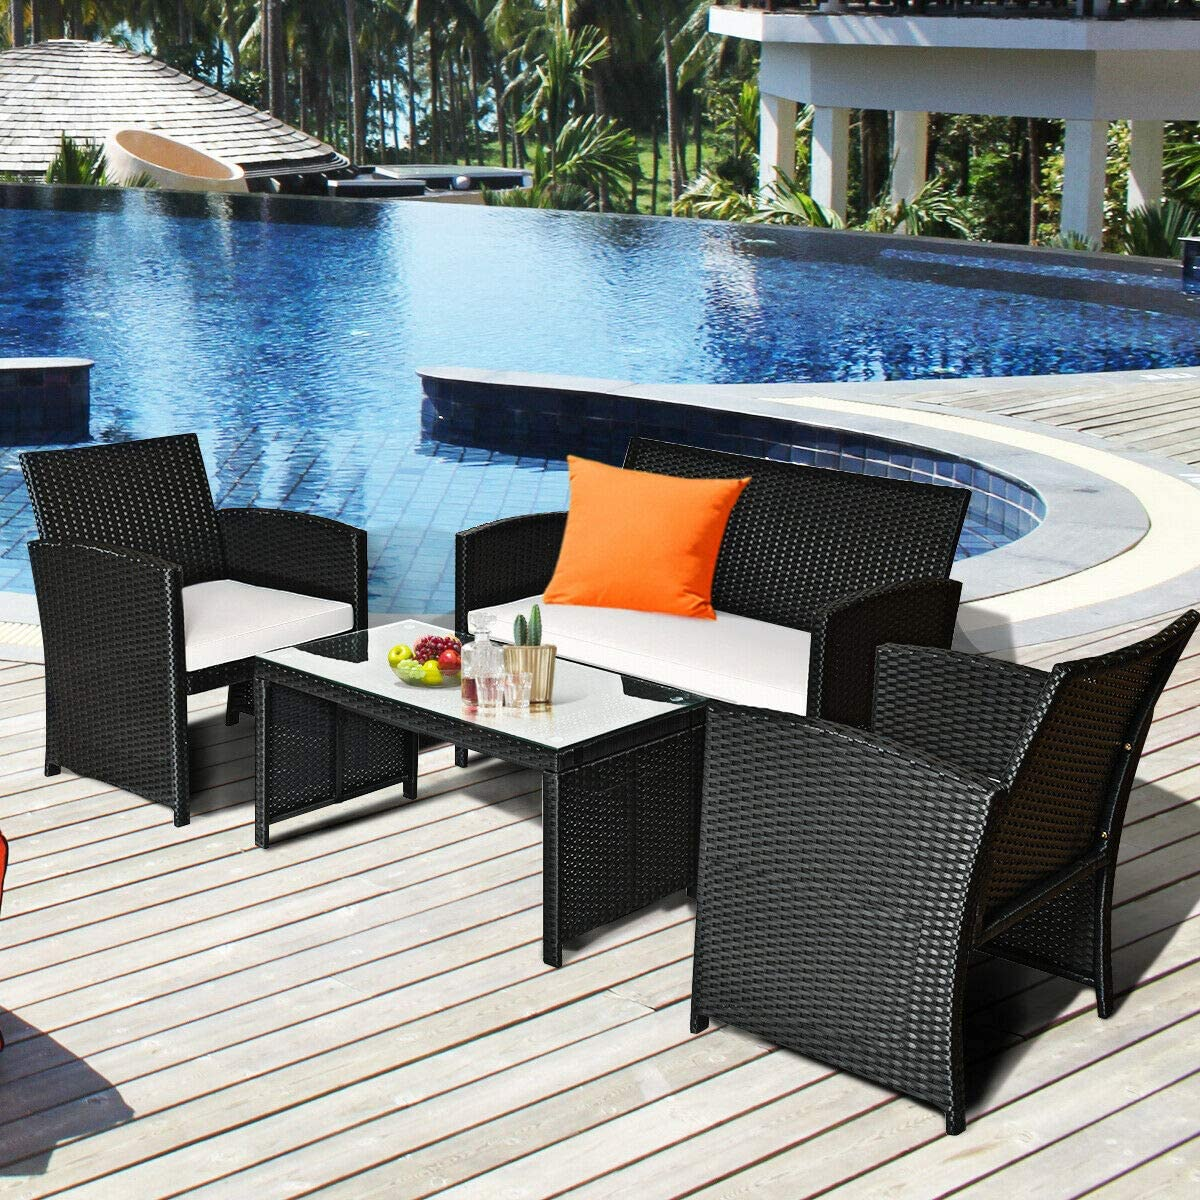 4 Pcs Rattan Sofa Table Set Kit Patio Outdoor Wicker Couch Furniture w/Cushion